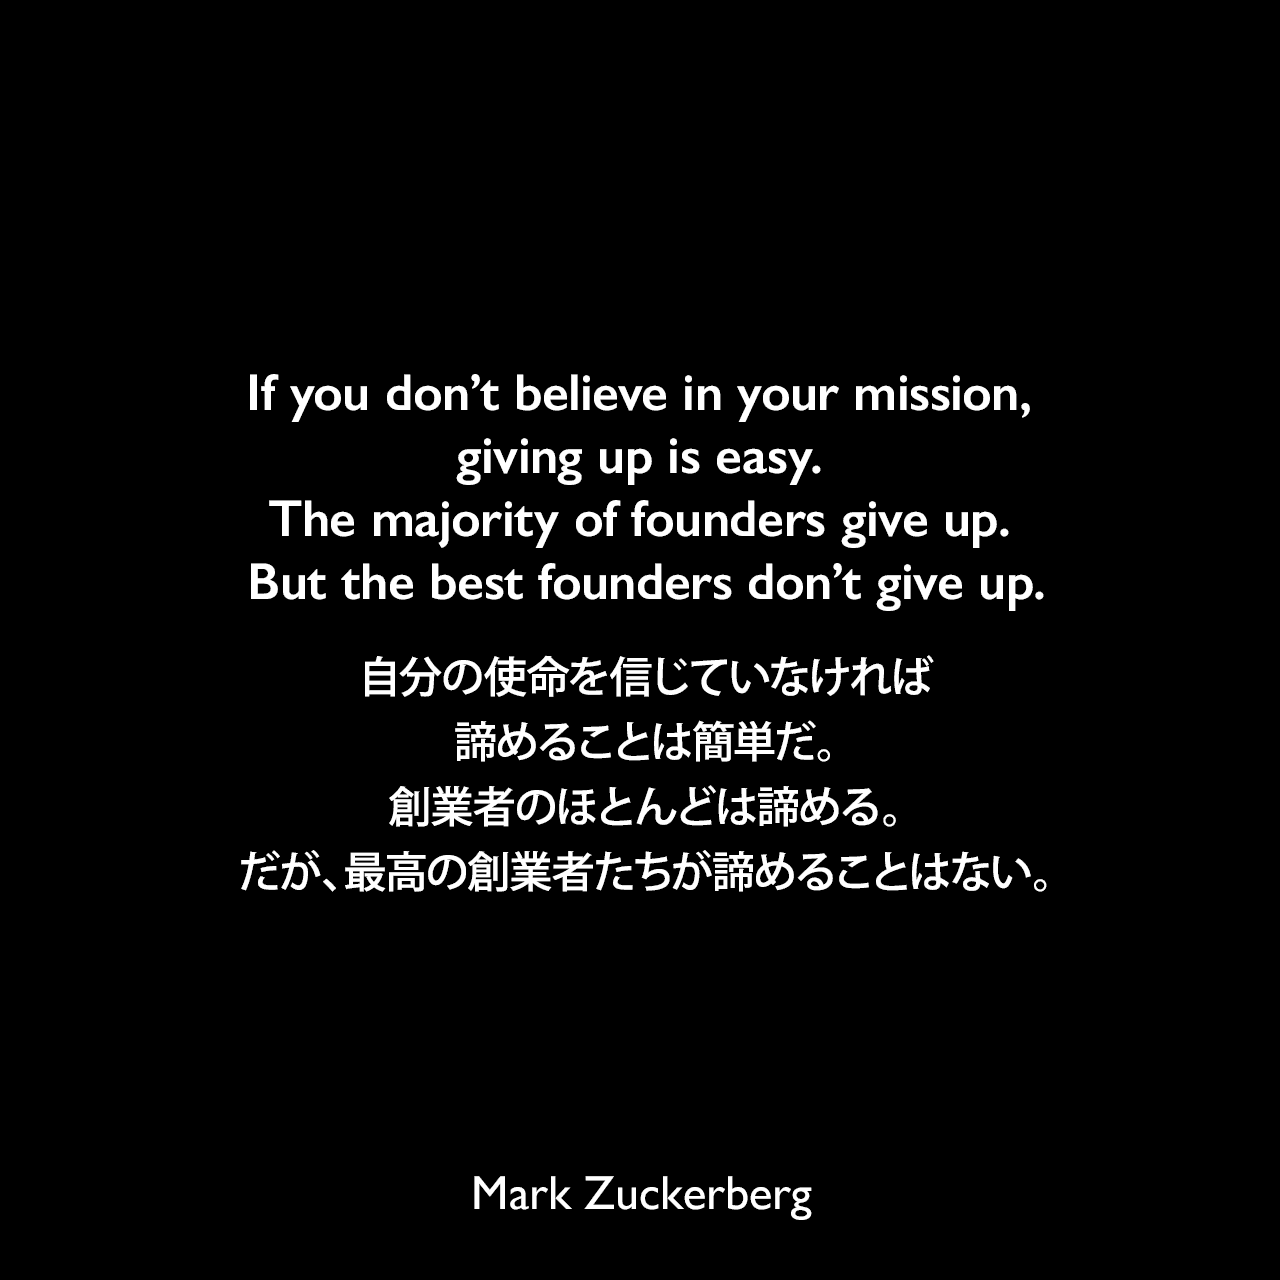 If you don't believe in your mission, giving up is easy. The majority of founders give up. But the best founders don't give up.自分の使命を信じていなければ、諦めることは簡単だ。創業者のほとんどは諦める。だが、最高の創業者たちが諦めることはない。Mark Zuckerberg